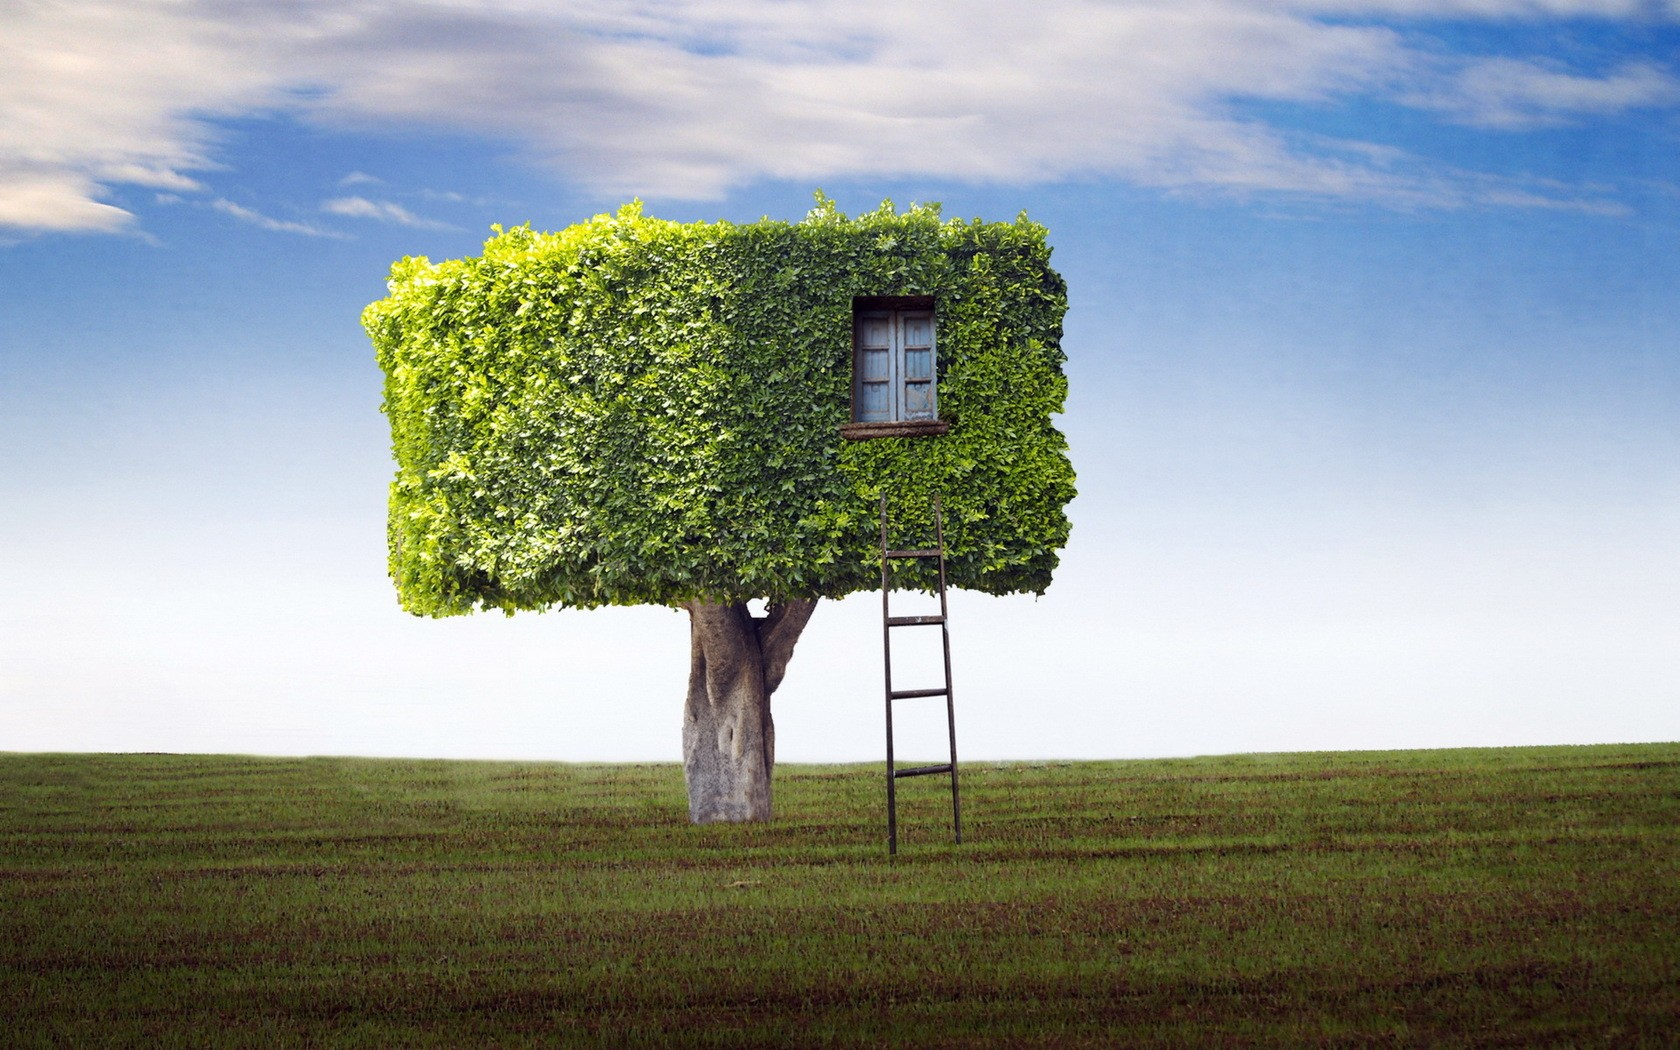 misc-fantasy-nature-house-tree-photo.jpg